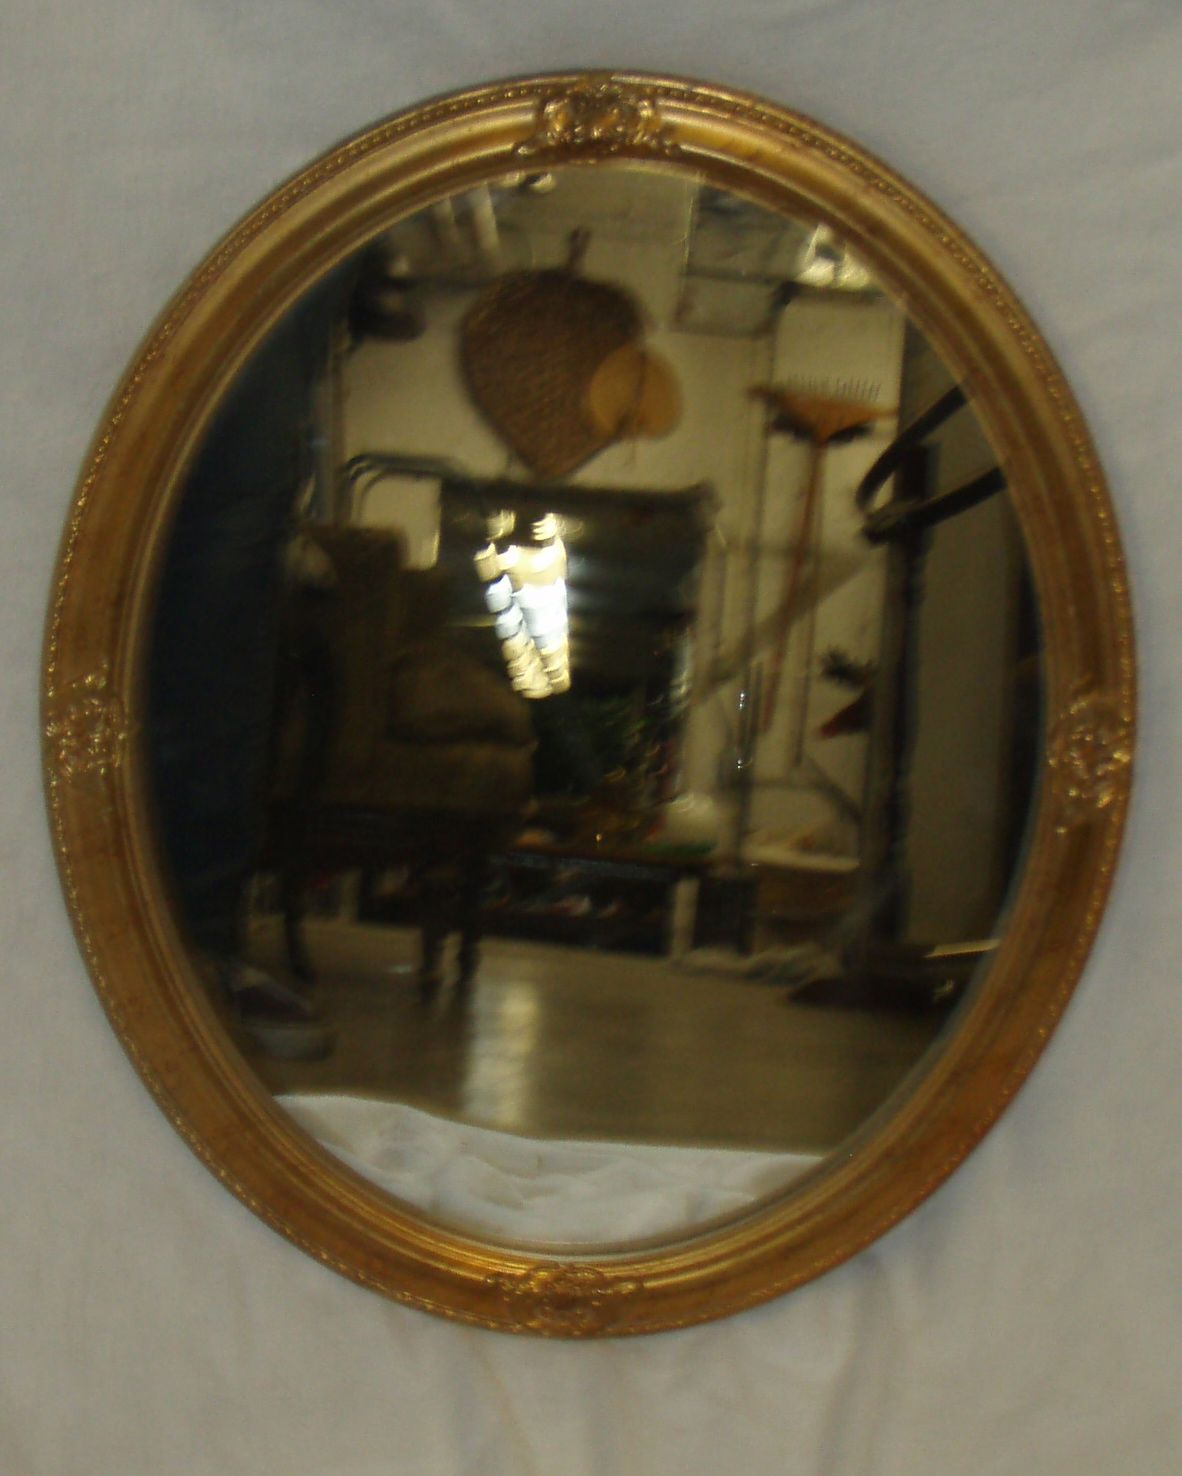 Gold Oval Wall Mirror (throne room)